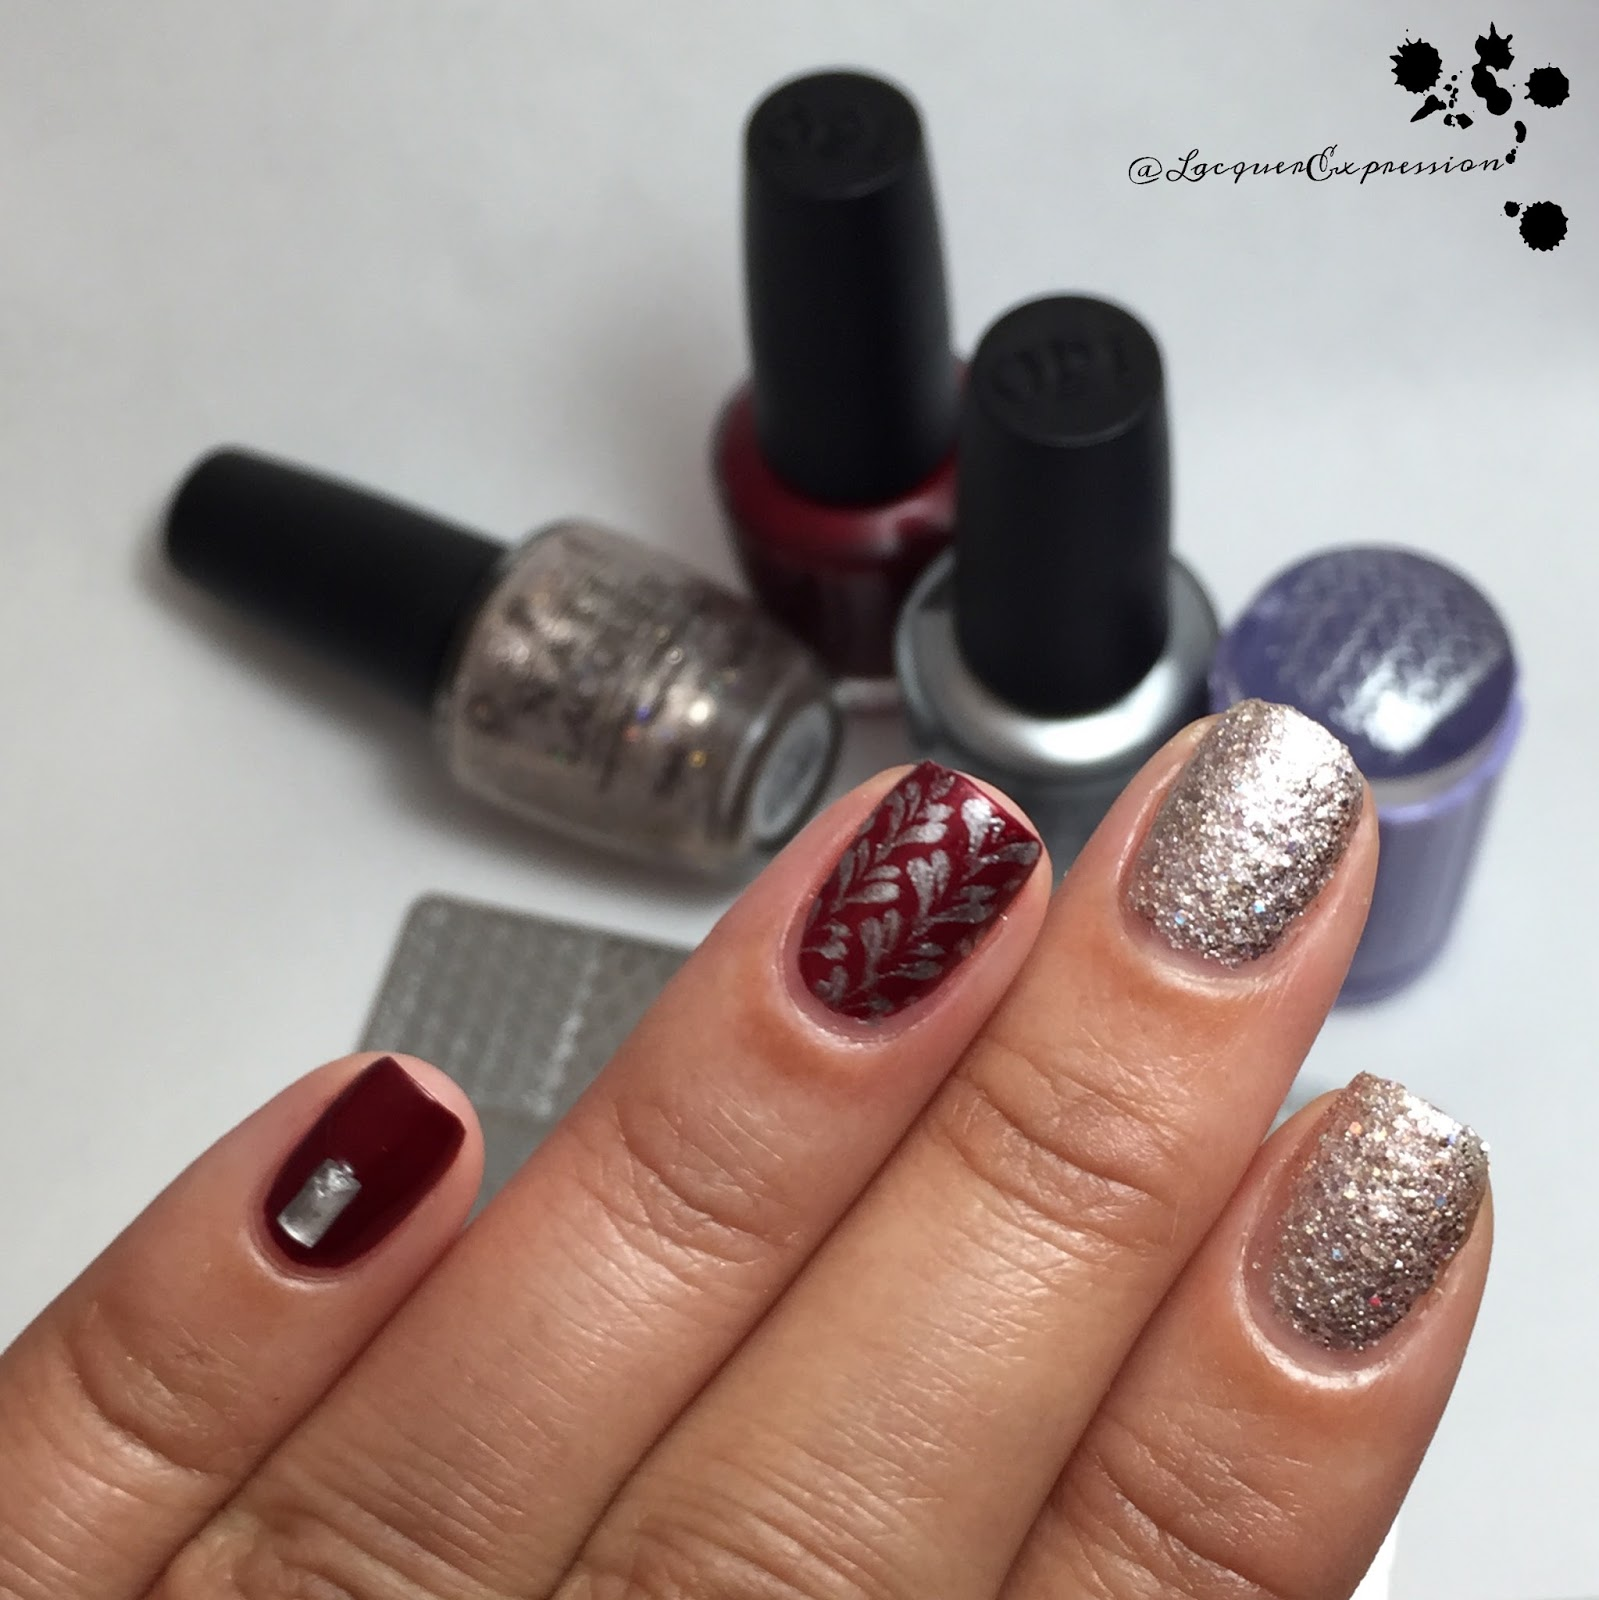 Nail Art - Red, Silver and Glittery Starlight manicure ...